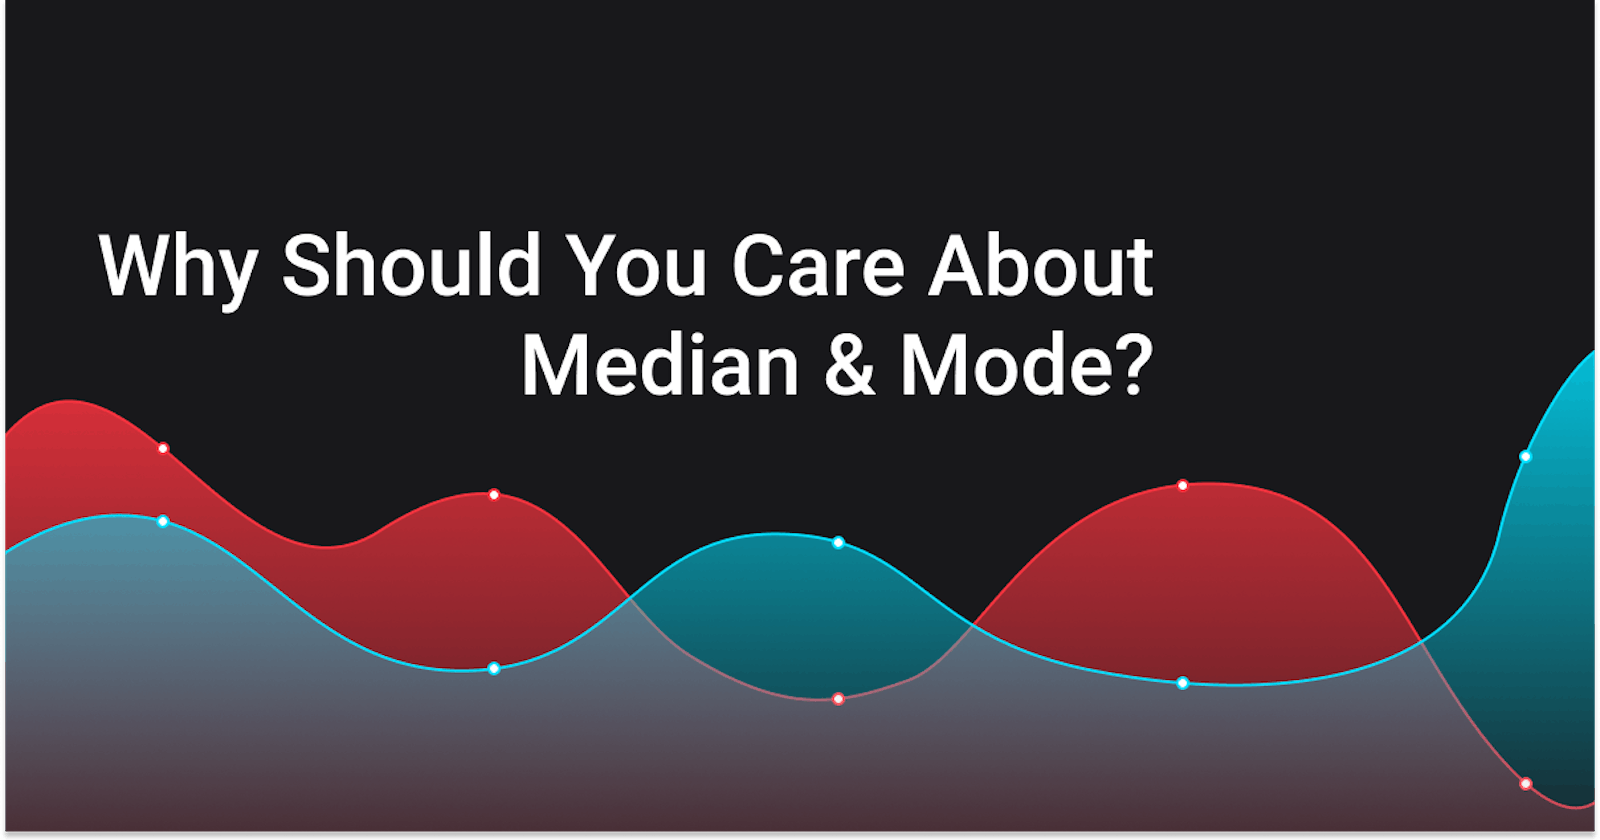 Basics Of Statistics & Why Should You Care About Median And Mode